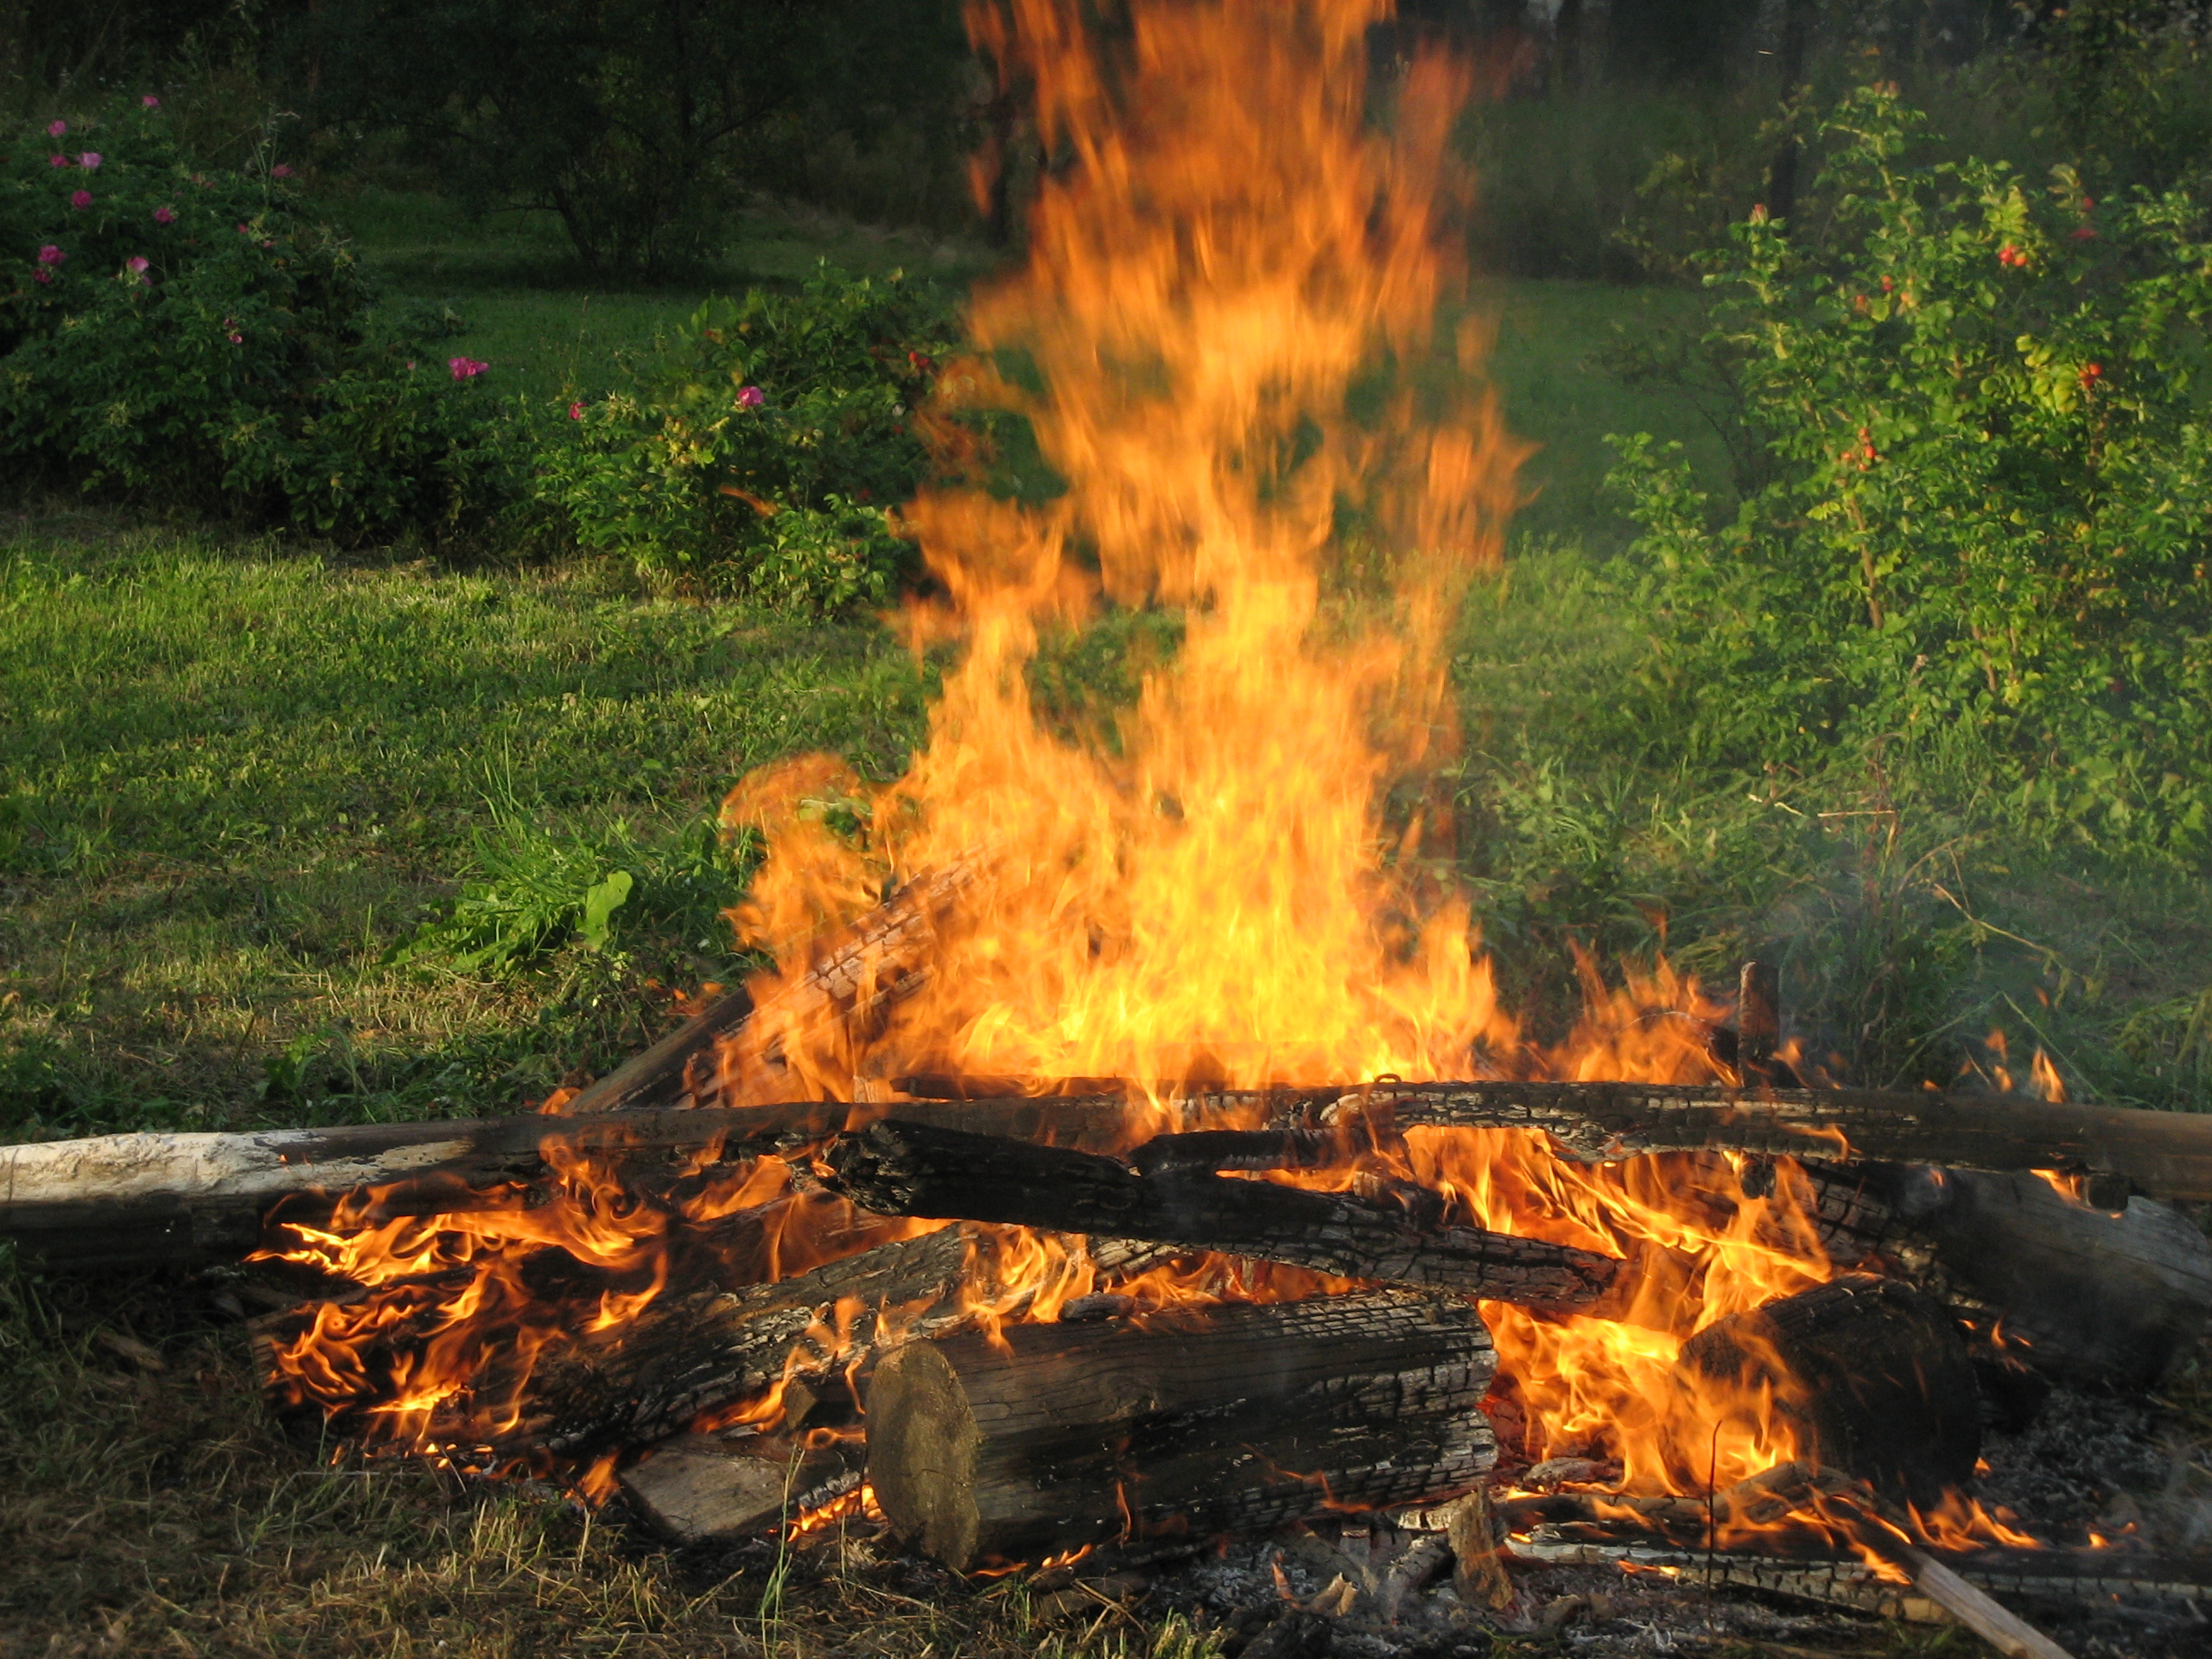 Wel e To The Jungle furthermore C fires Still Banned In Cariboo Fire Centre as well 1 besides How To Build Better Garage Floor likewise Fire Golem. on types of fires to build